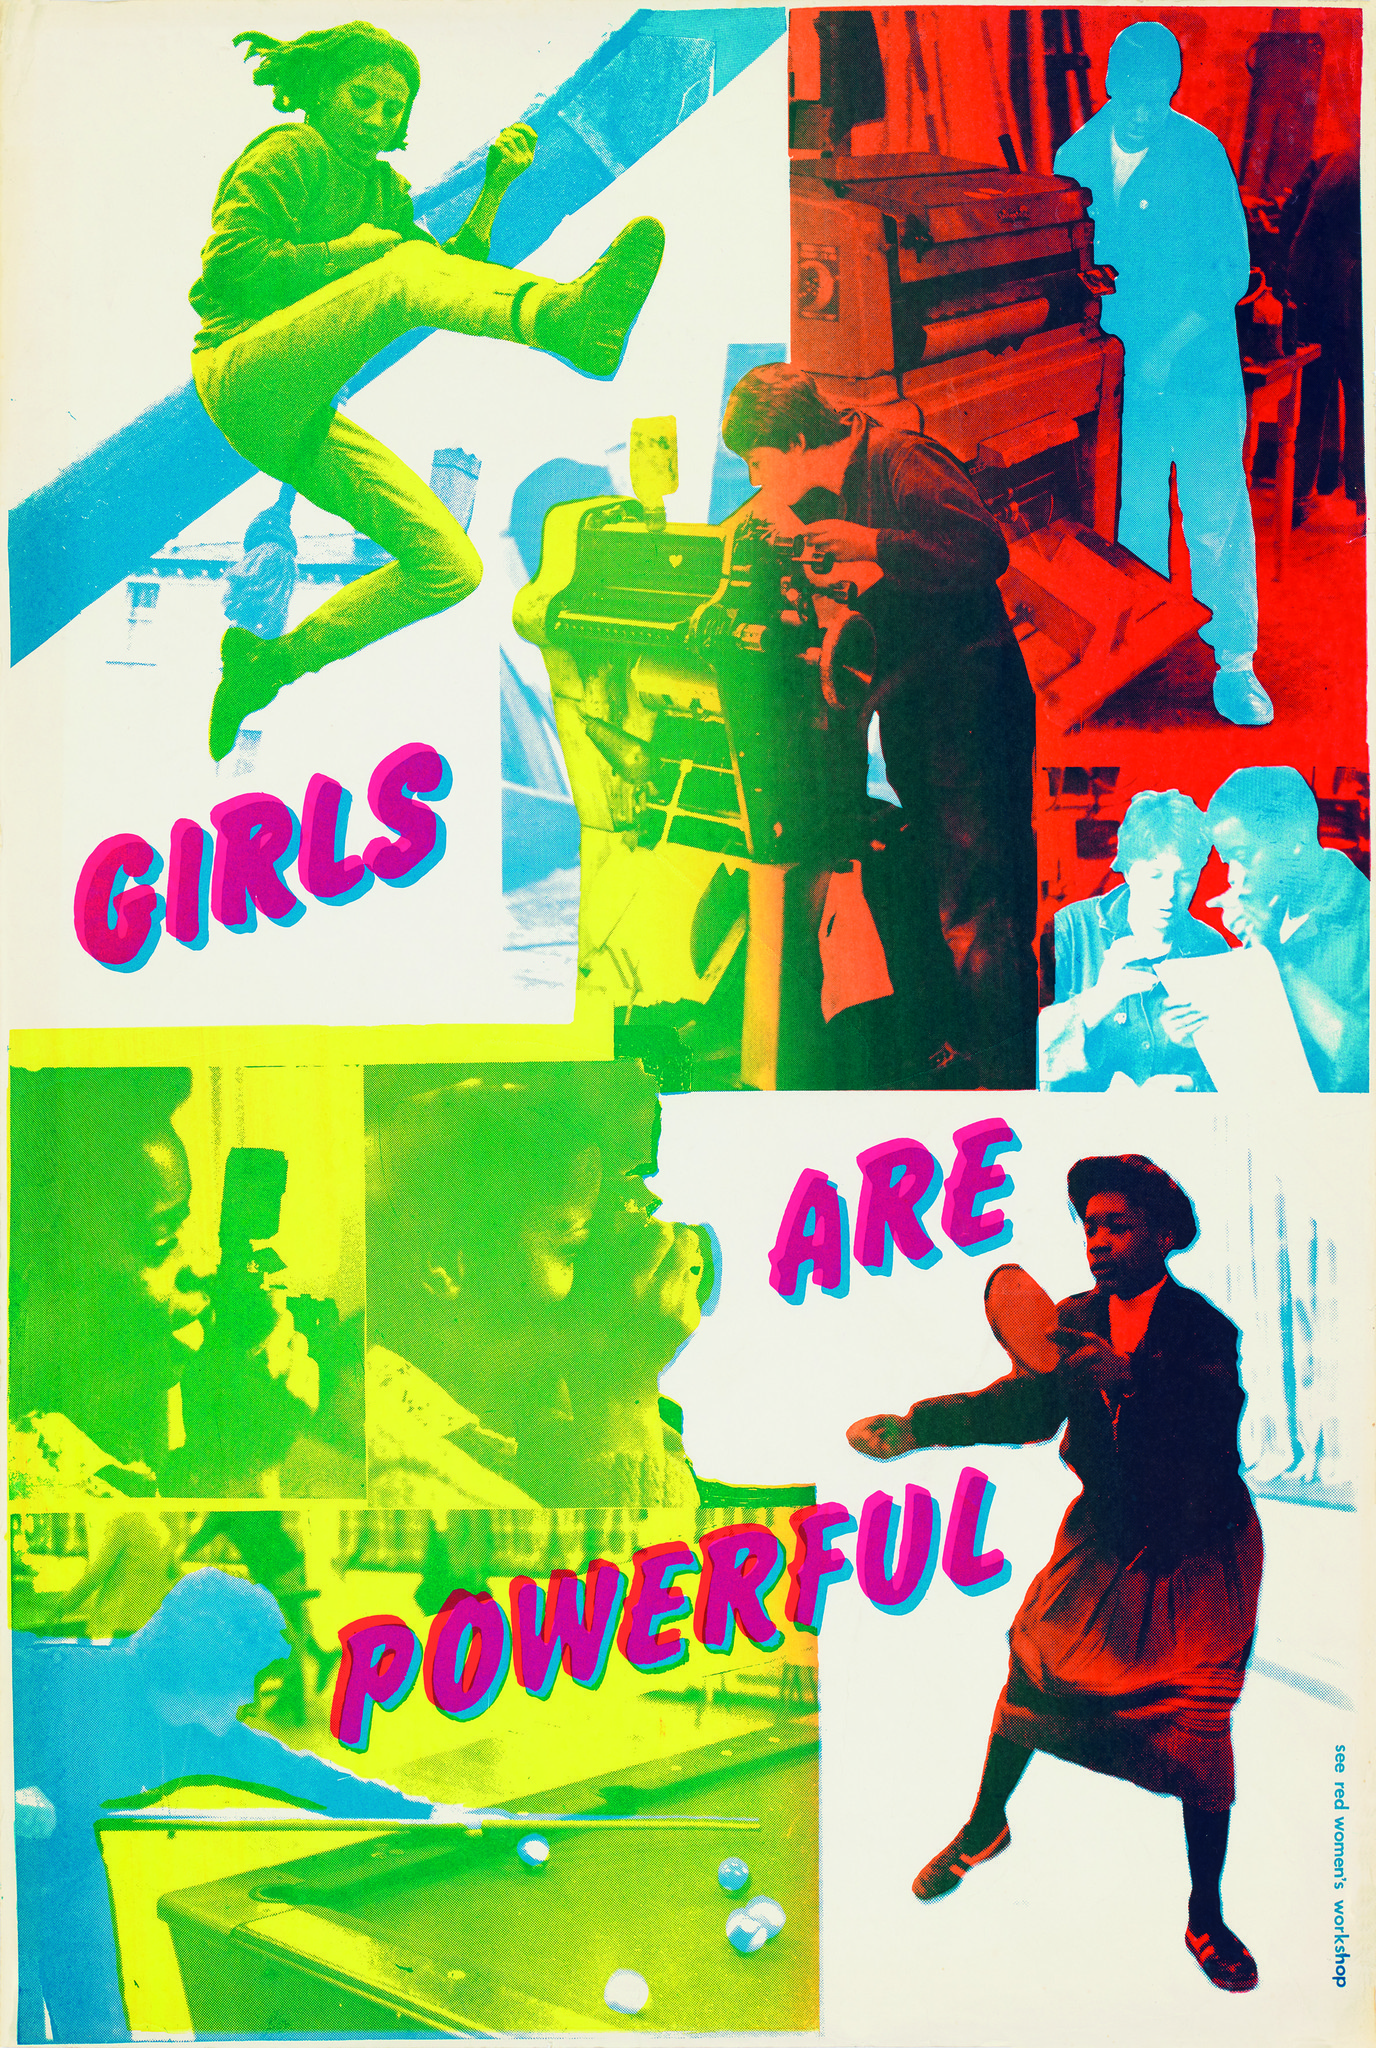 """Girls Are Powerful,"" 1979."